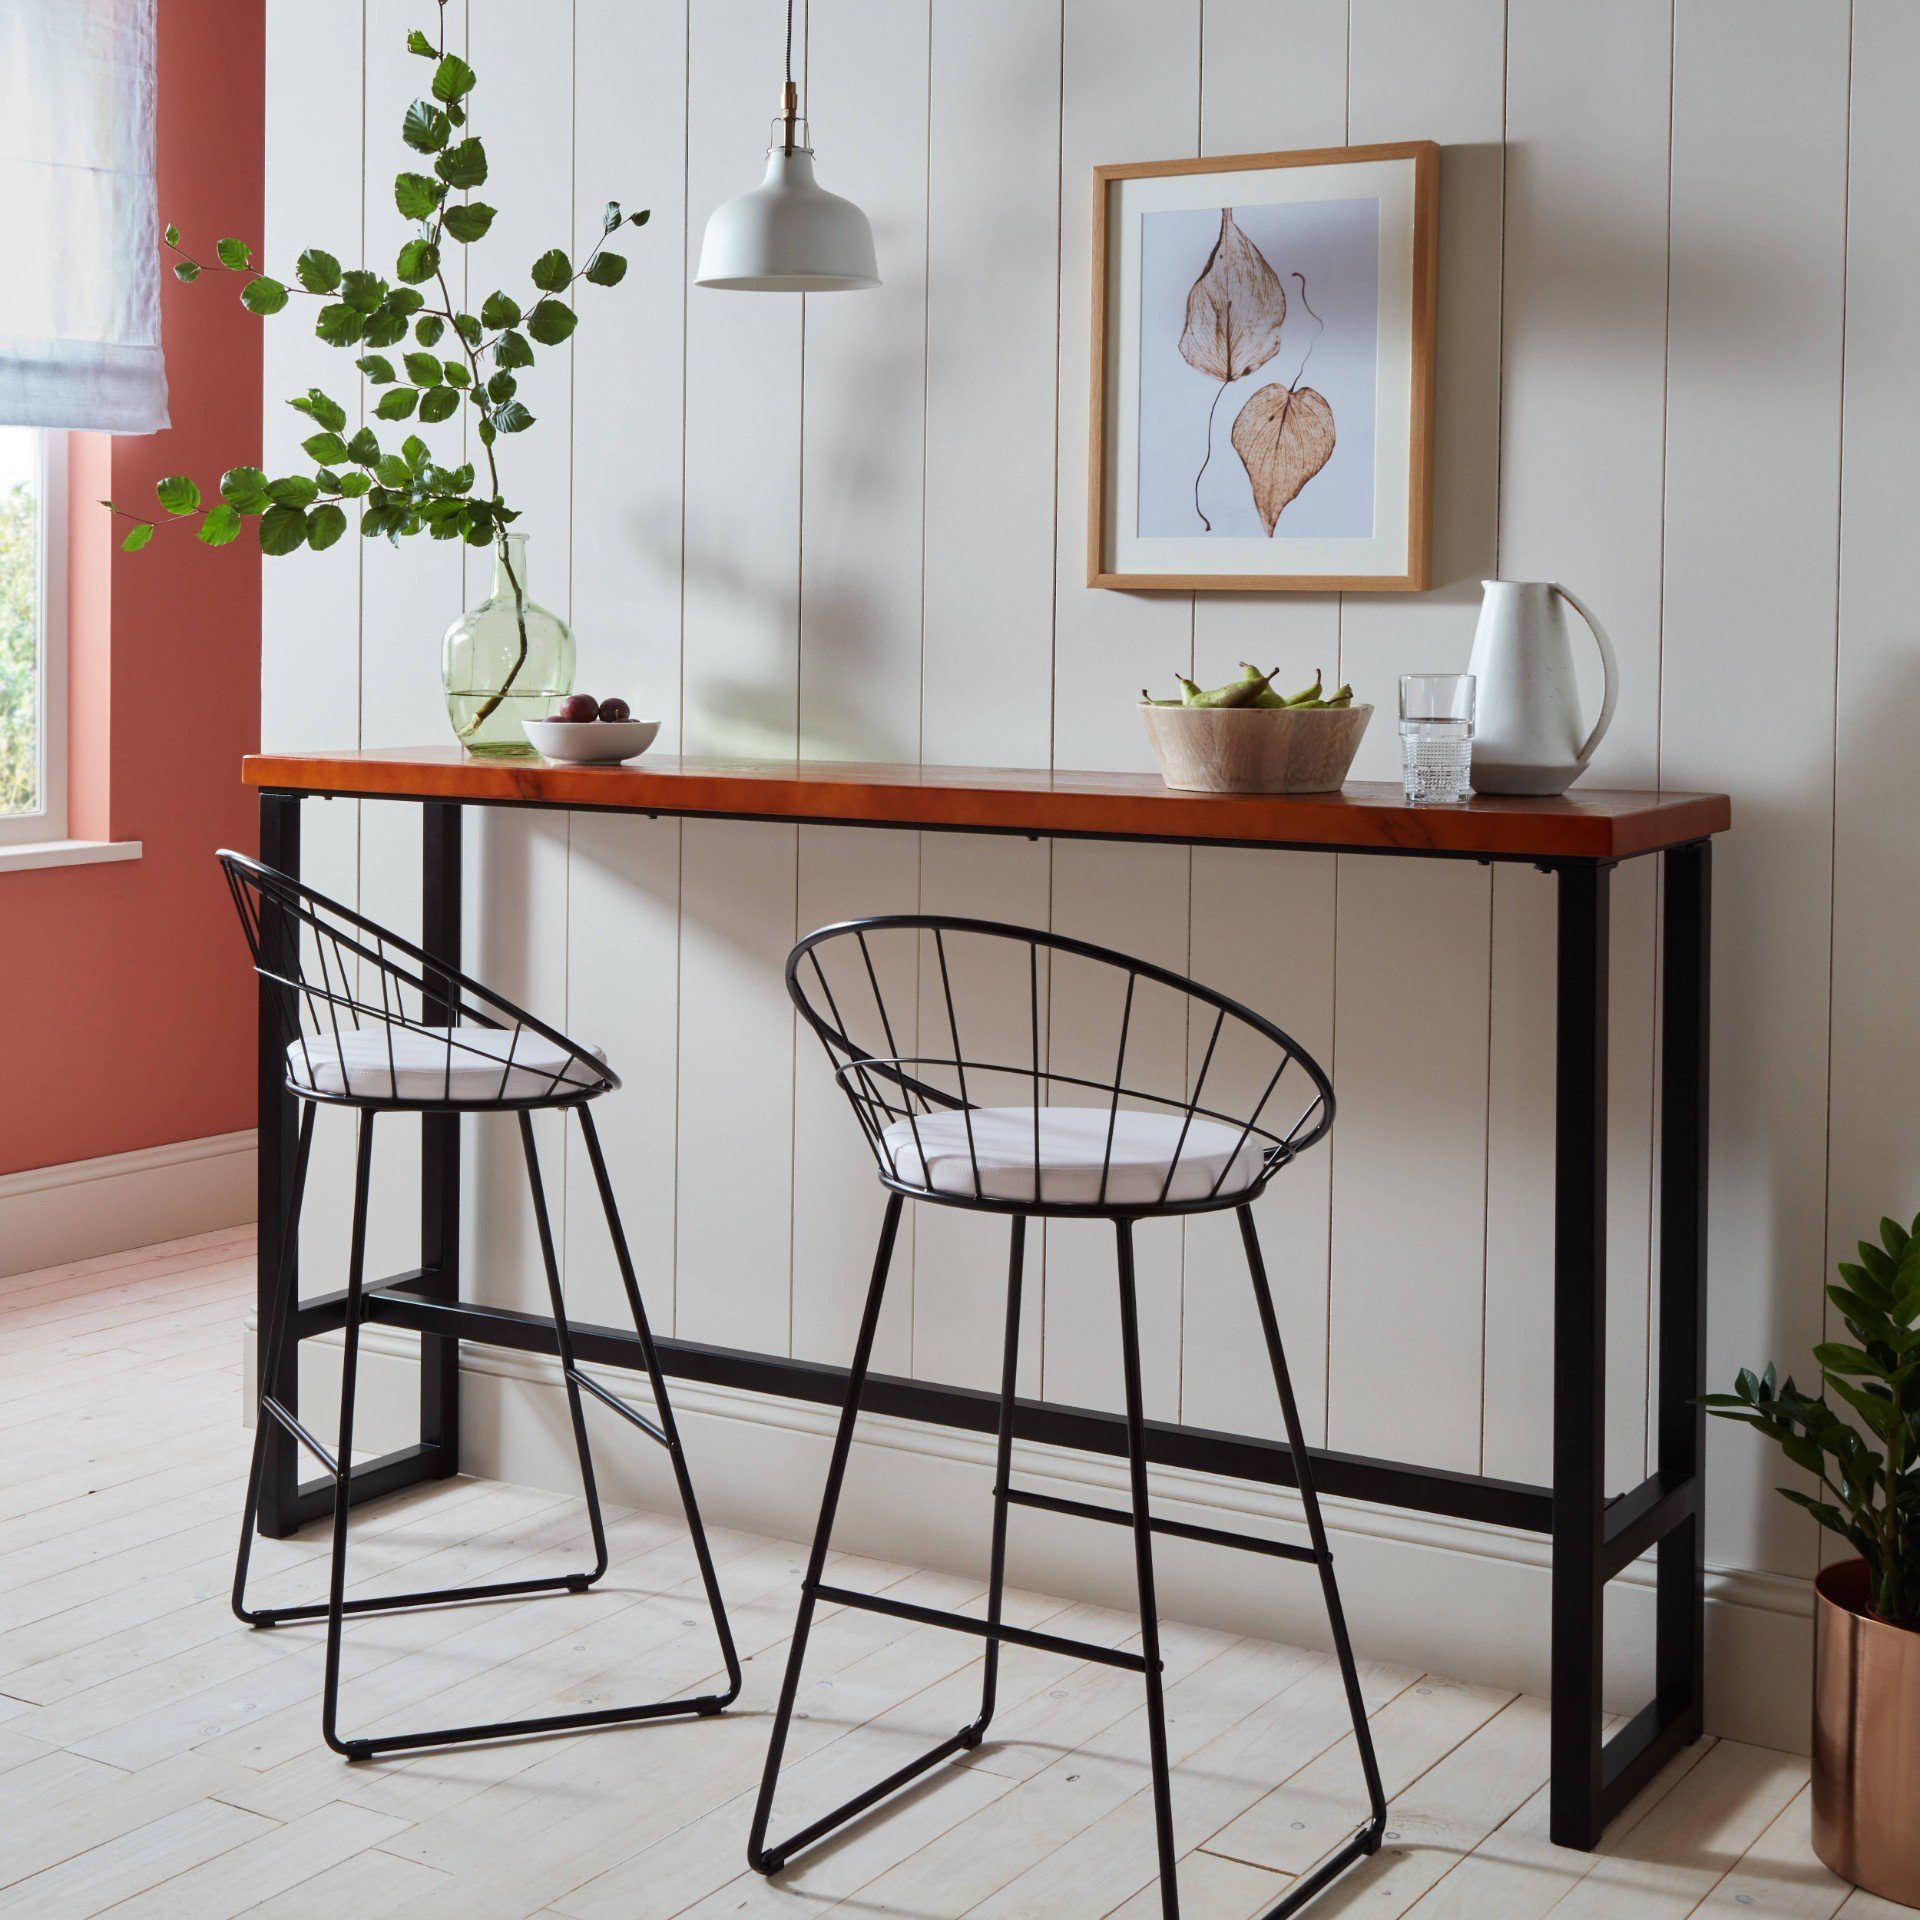 Jimmy bar table and stools - Laura James